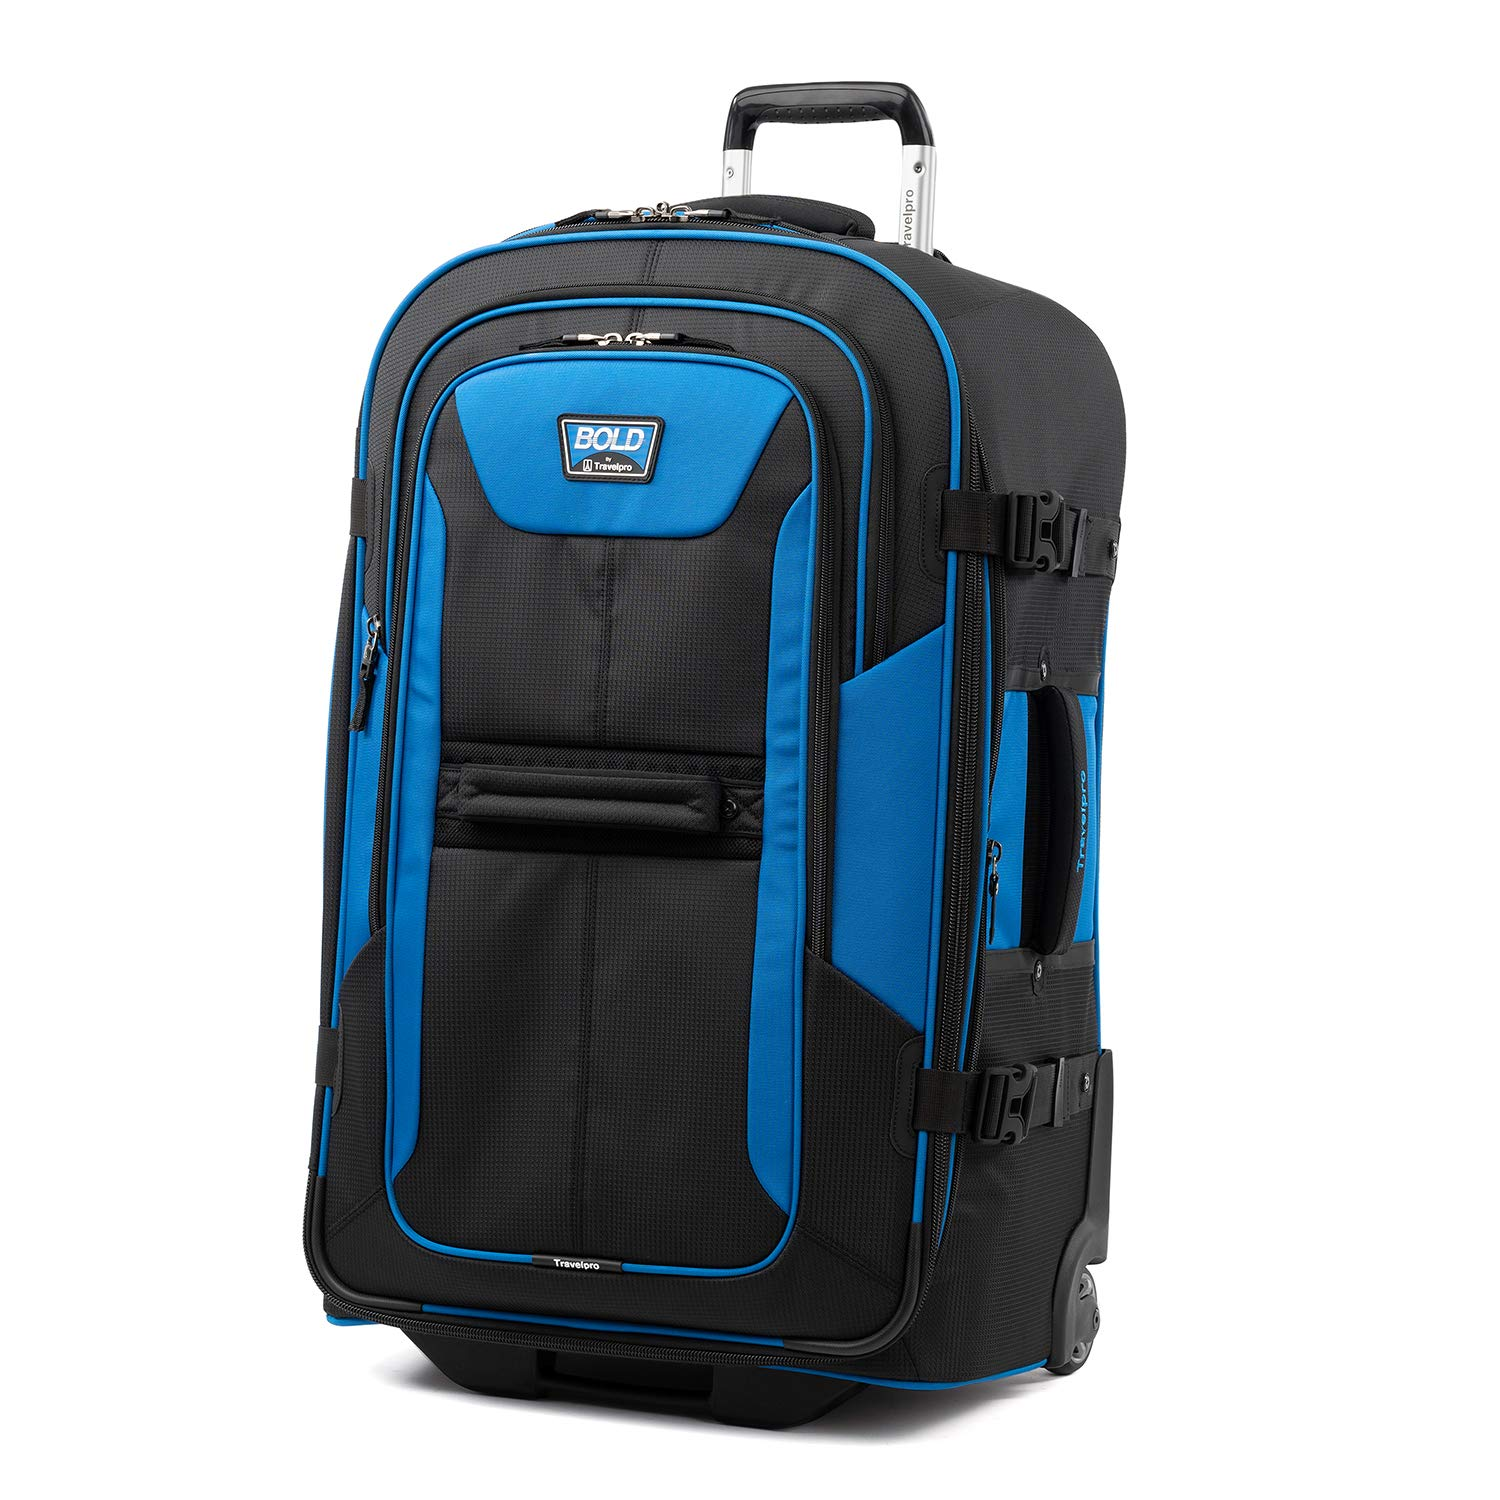 Travelpro Checked Large, Blue/Black by Travelpro